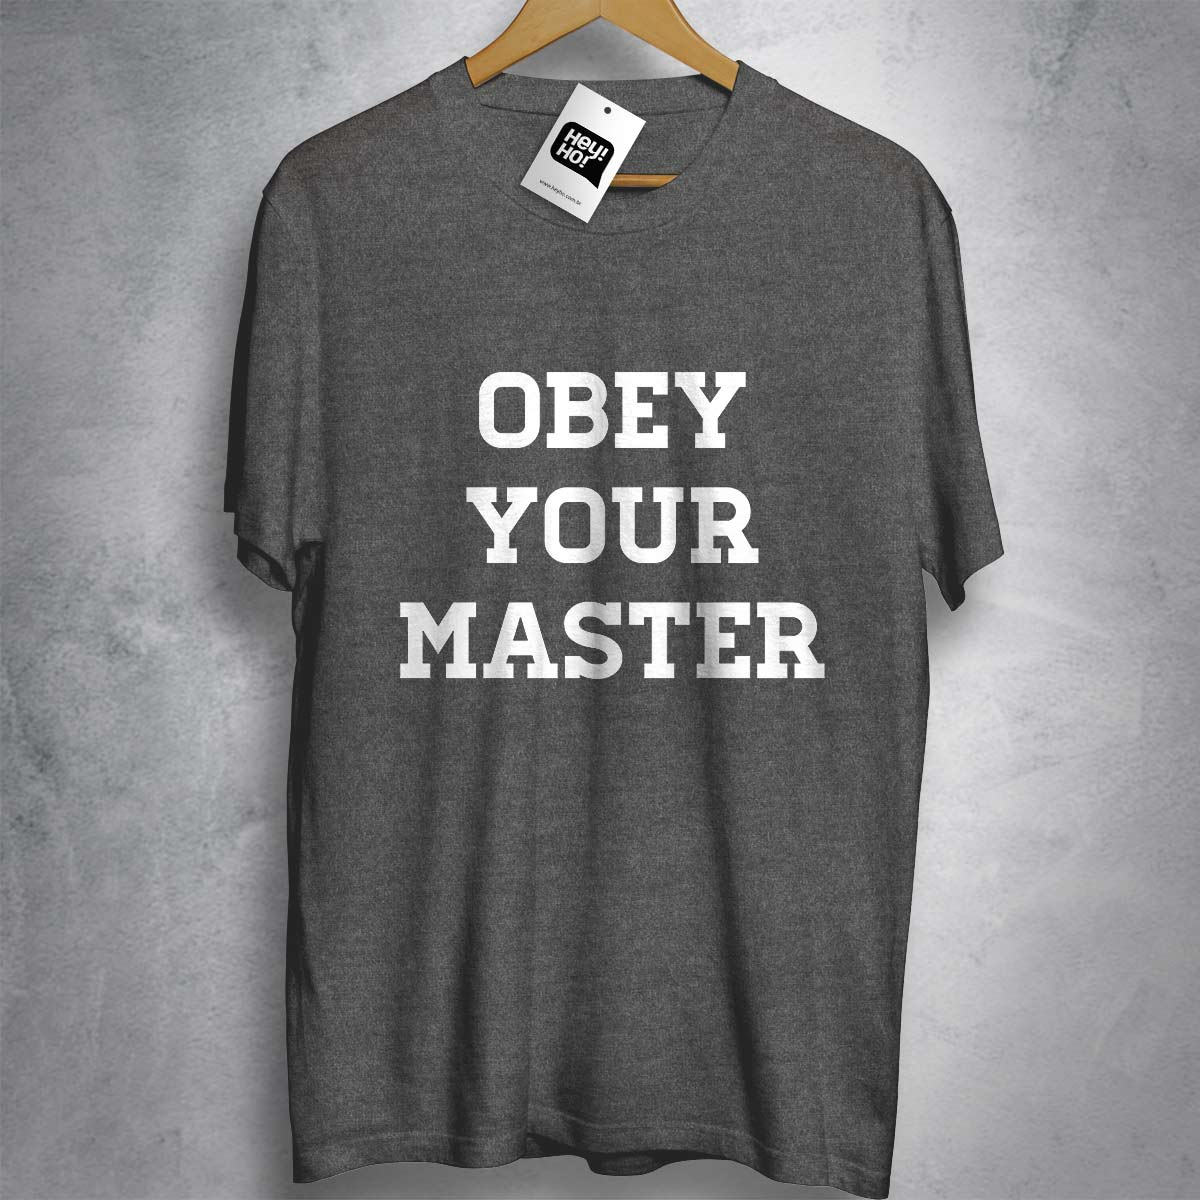 METALLICA - Obey your master